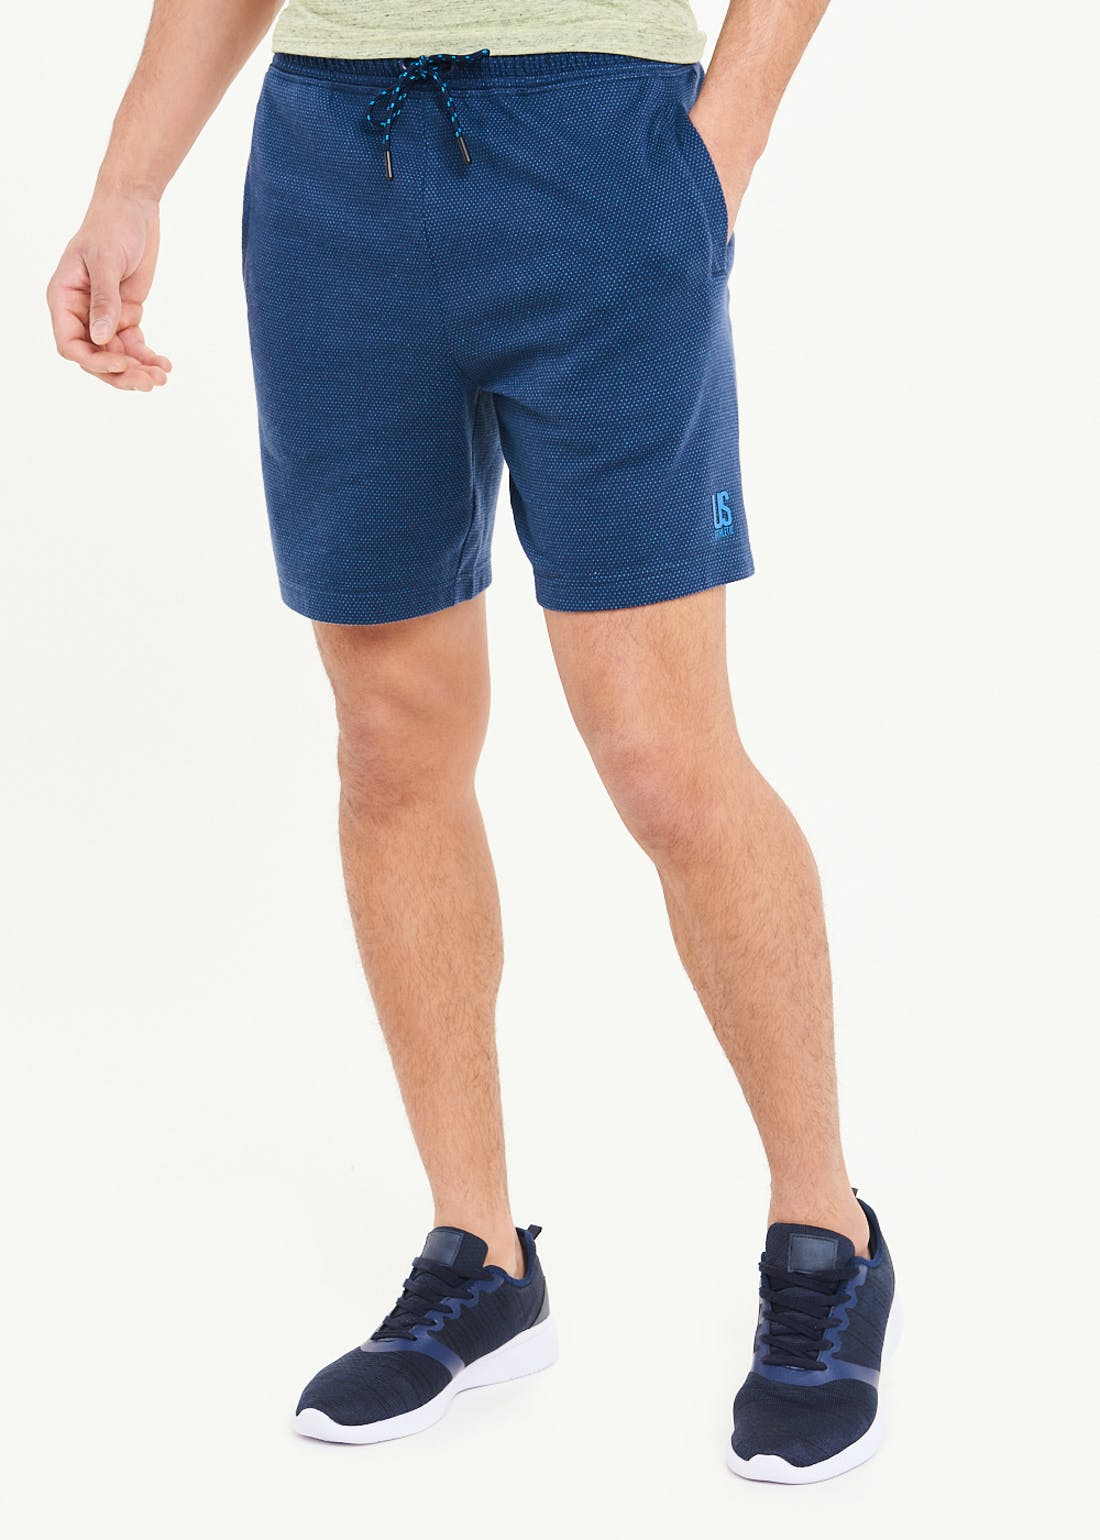 US Athletic Jogger Shorts